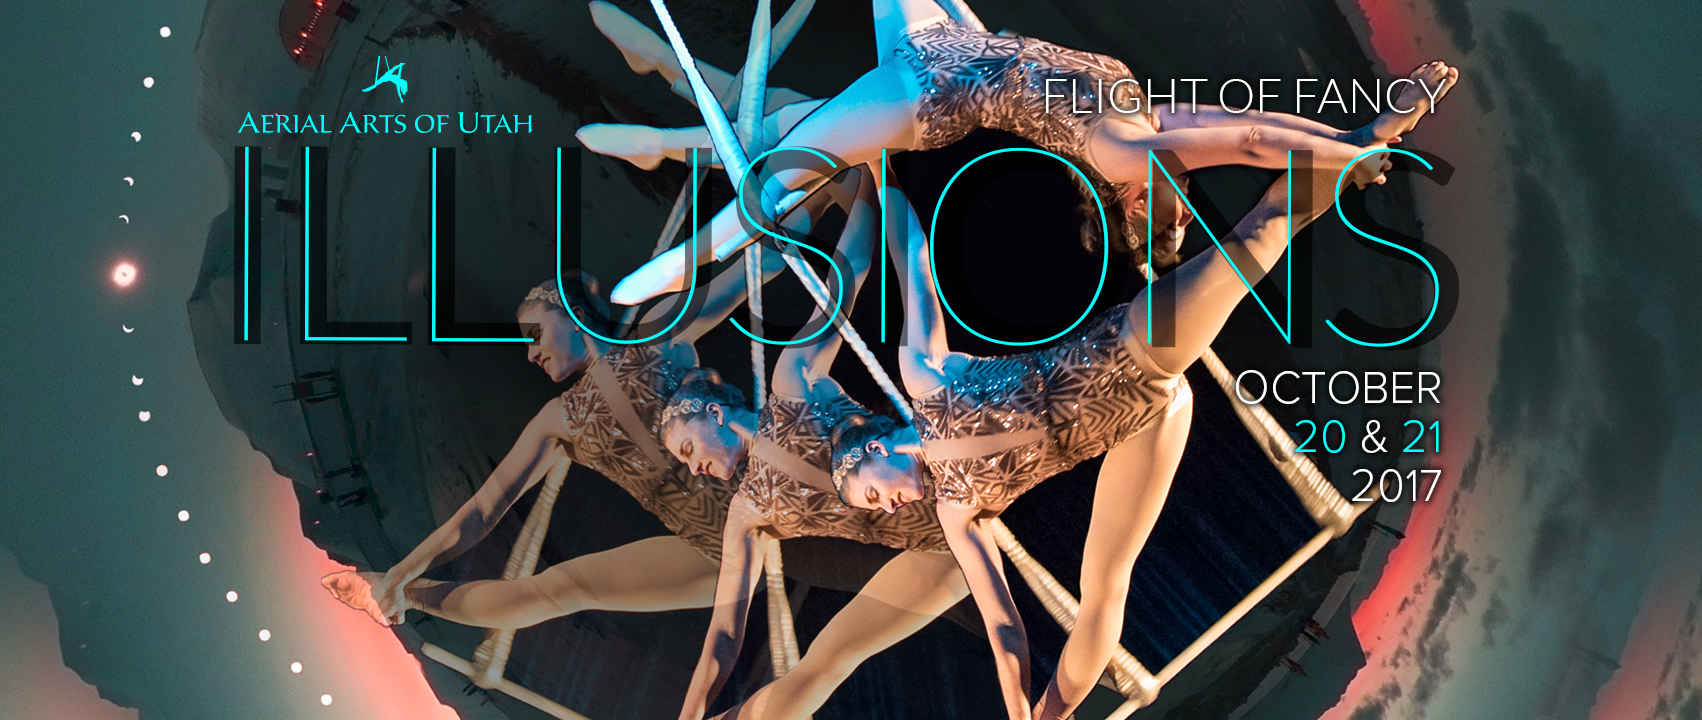 Aerial Arts of Utah Presents Flight of Fancy: Illusions at the Rose Wagner Black Box Theater October 20 & 21.